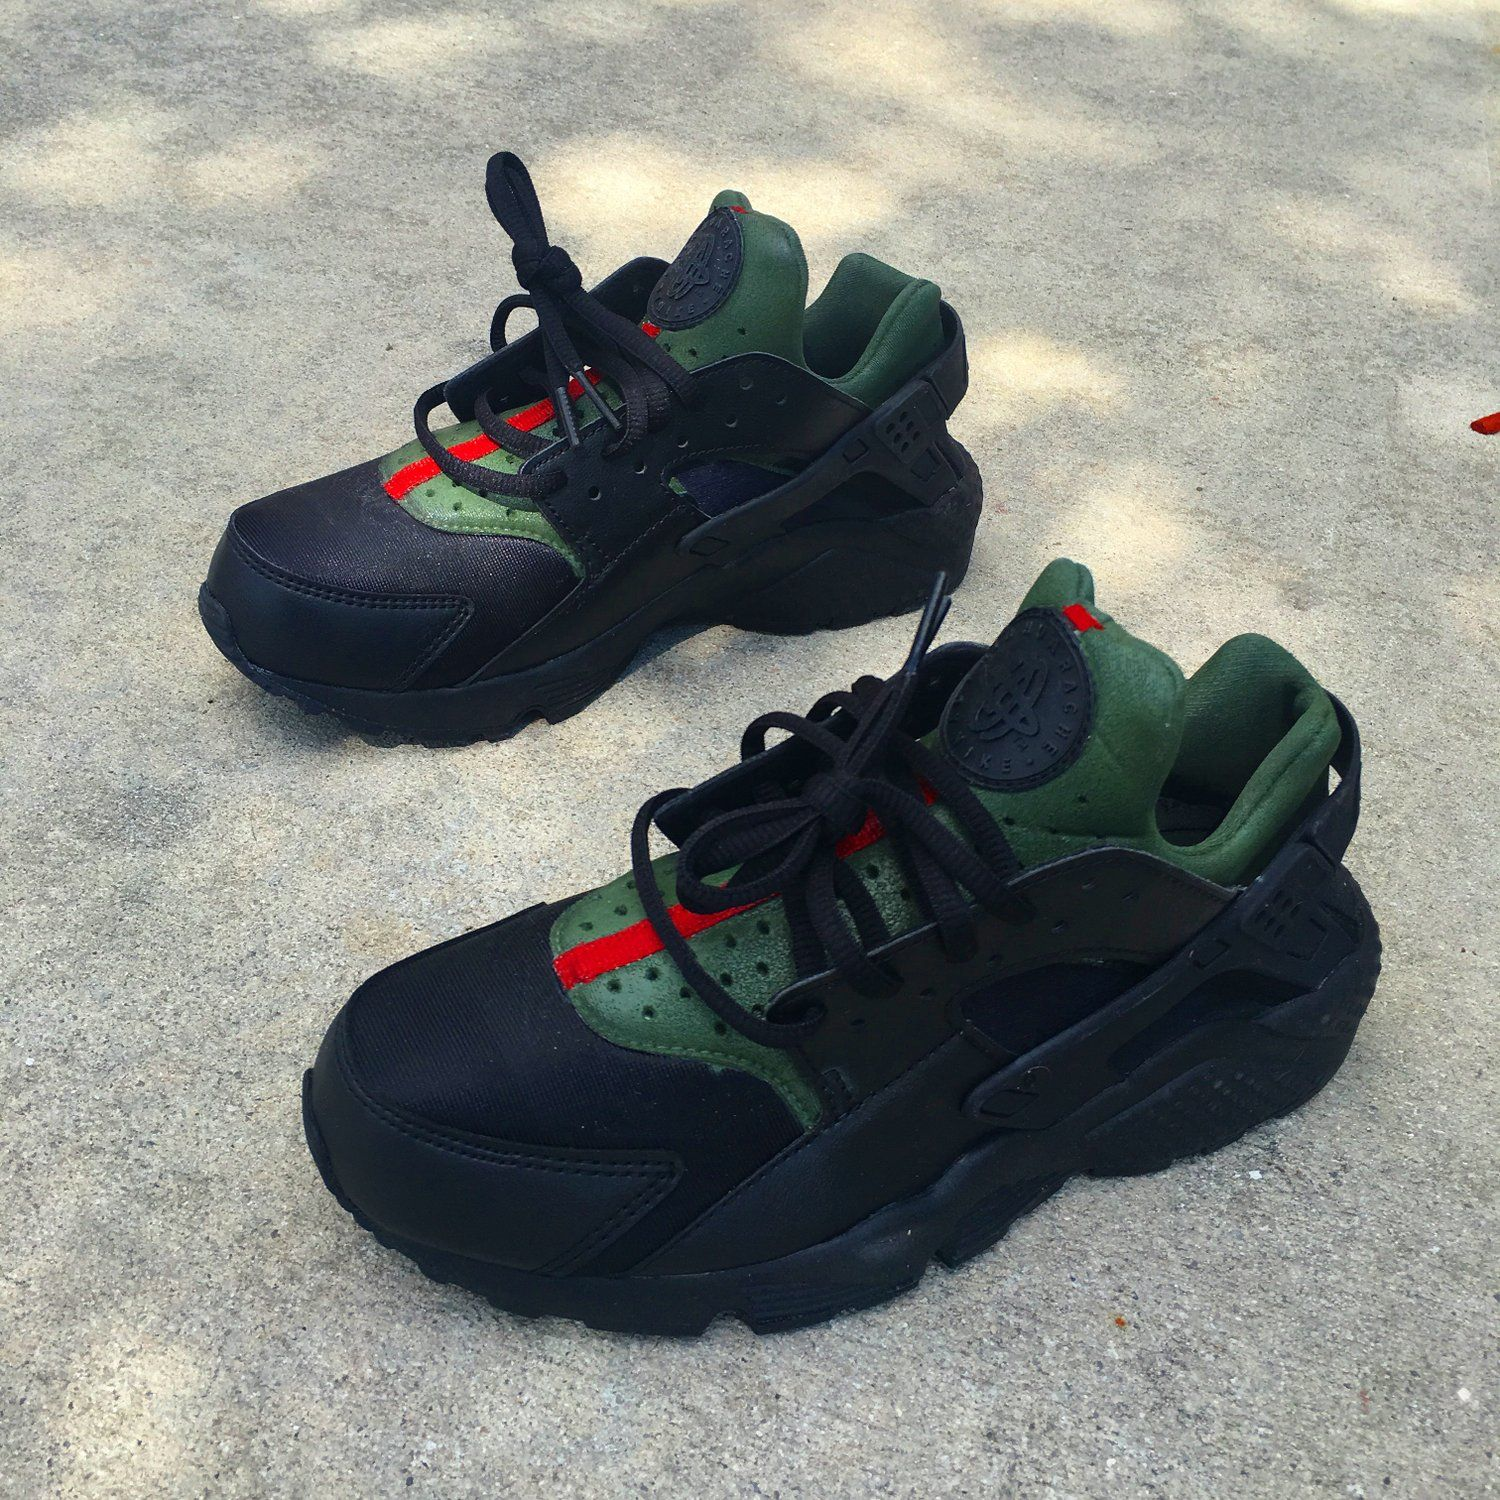 new products 5f3bd dc1a4 Image of Black Gucci Huaraches | Shoes in 2019 | Huaraches ...